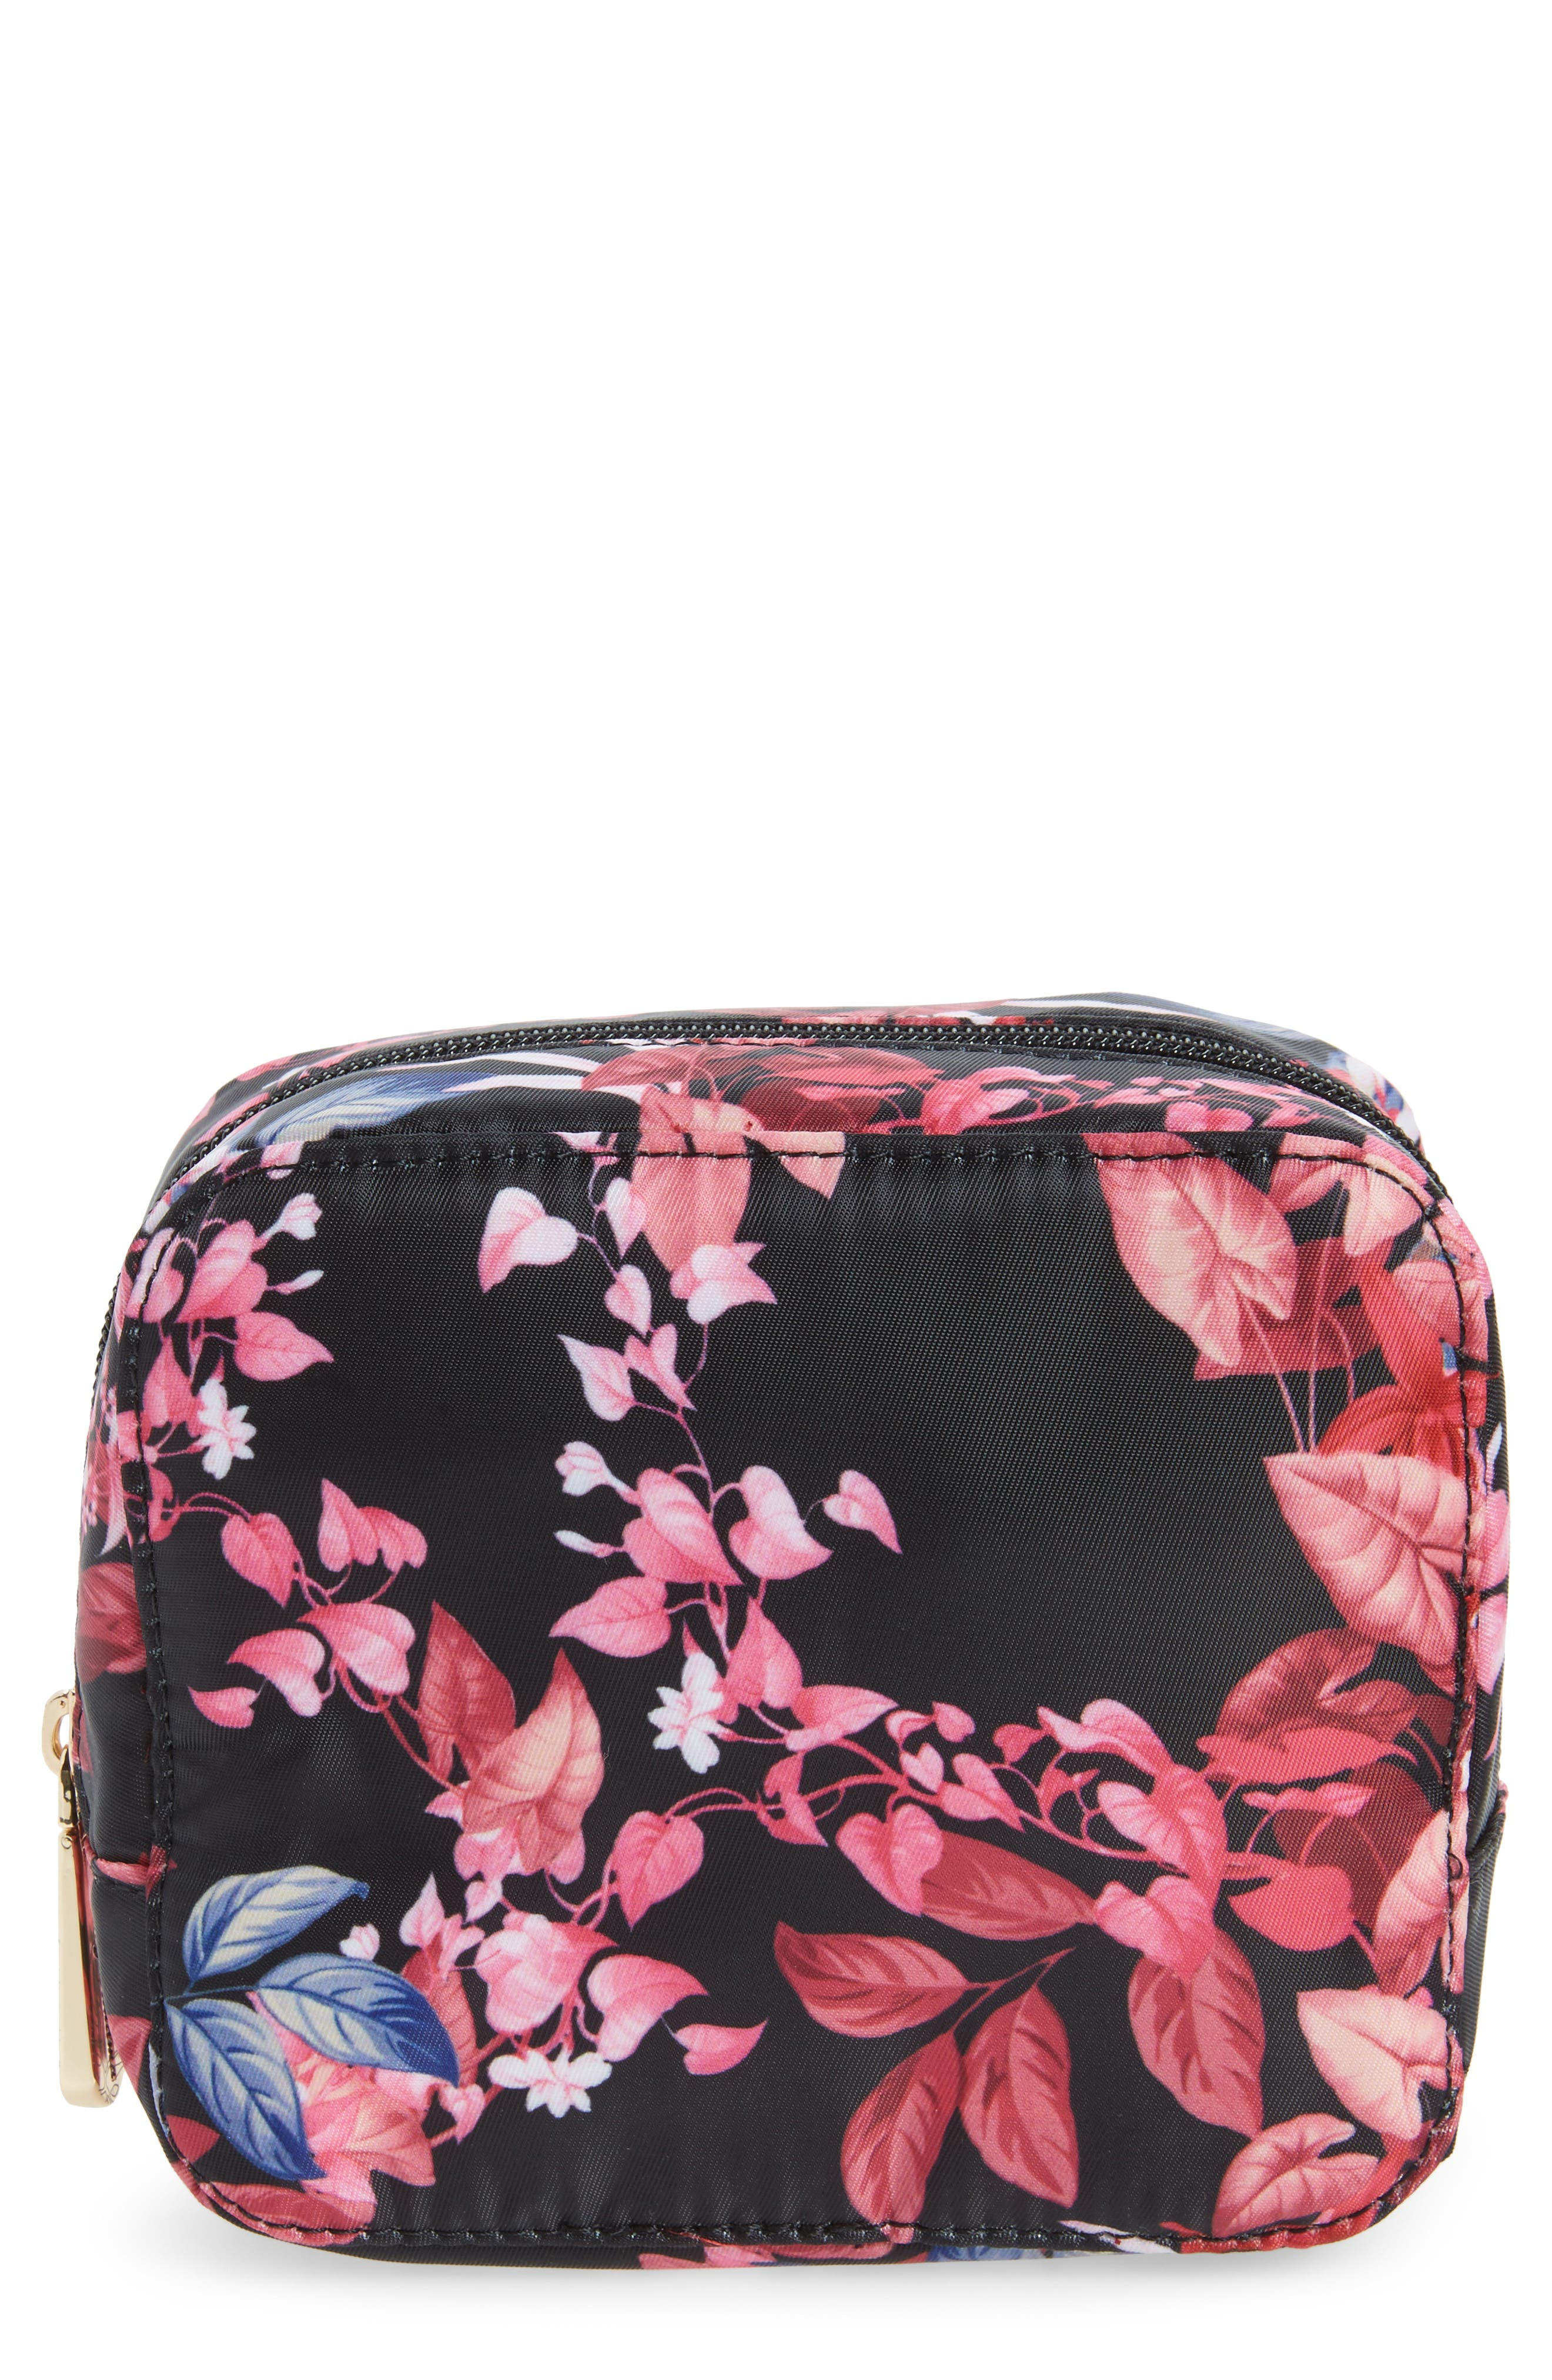 Alternate Image 1 Selected - Tommy Bahama Up in the Air Cosmetics Case & Eye Mask